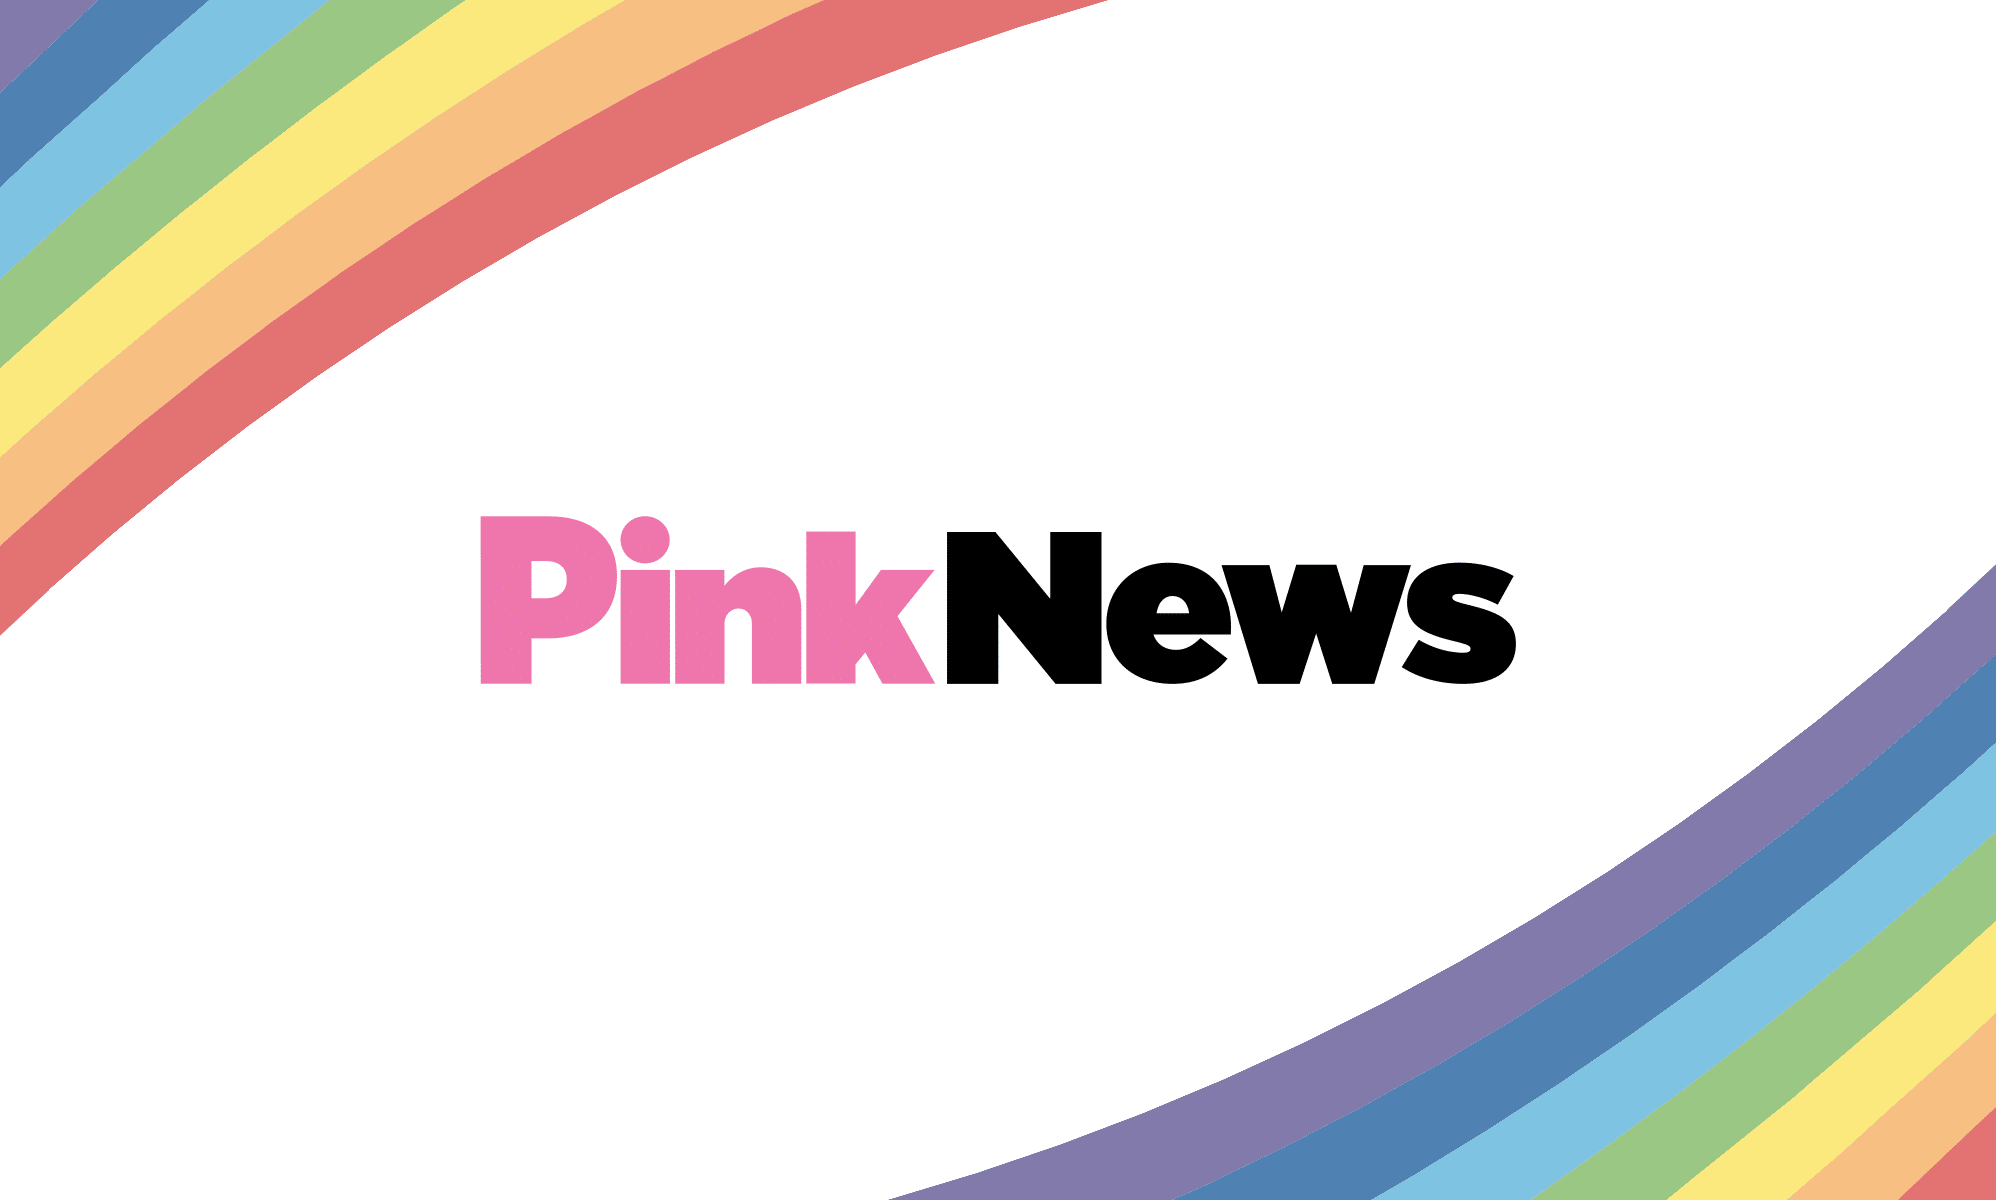 UK's 'first ever' national pride to be held in Hull